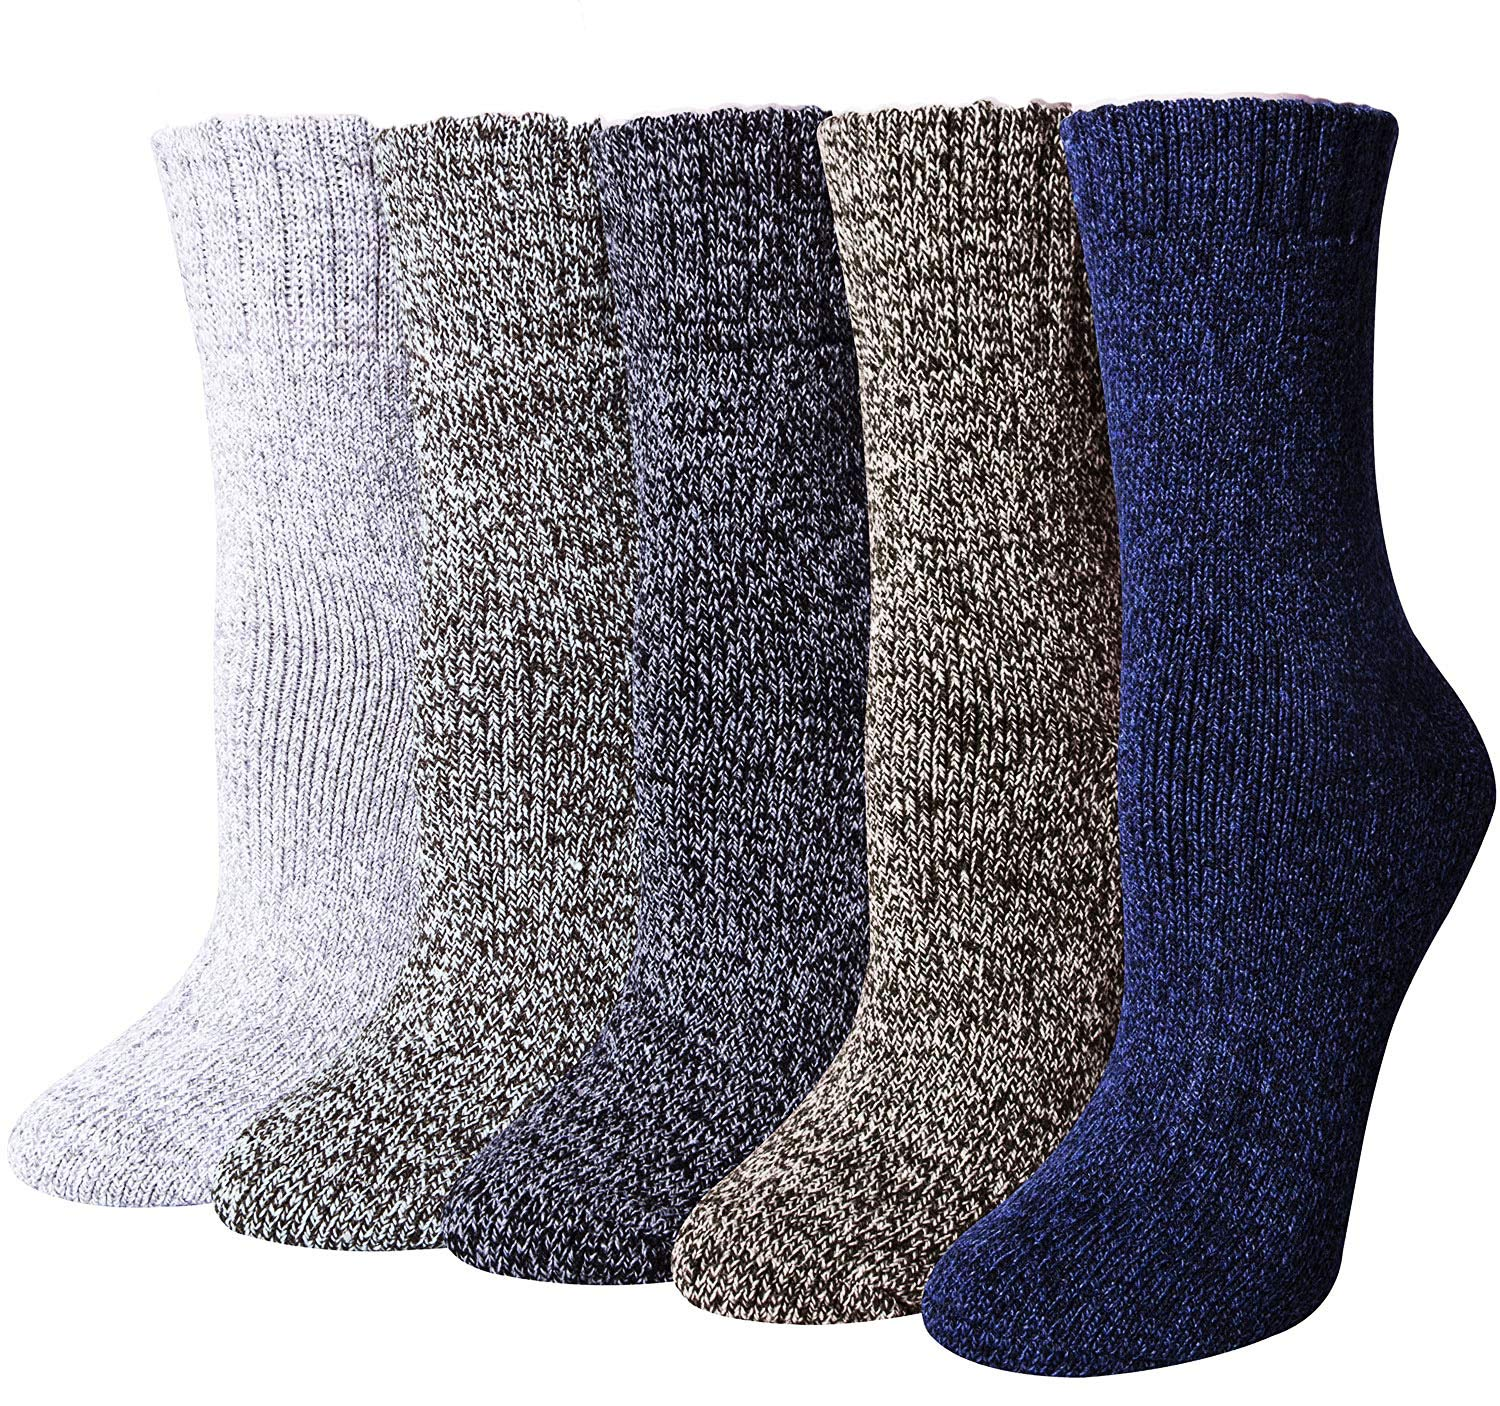 Women's Vintage Winter Soft Wool Funny Socks Casual Thick Knit Crew Cozy Socks 5 Pack 5 Pack Solid Warm Socks